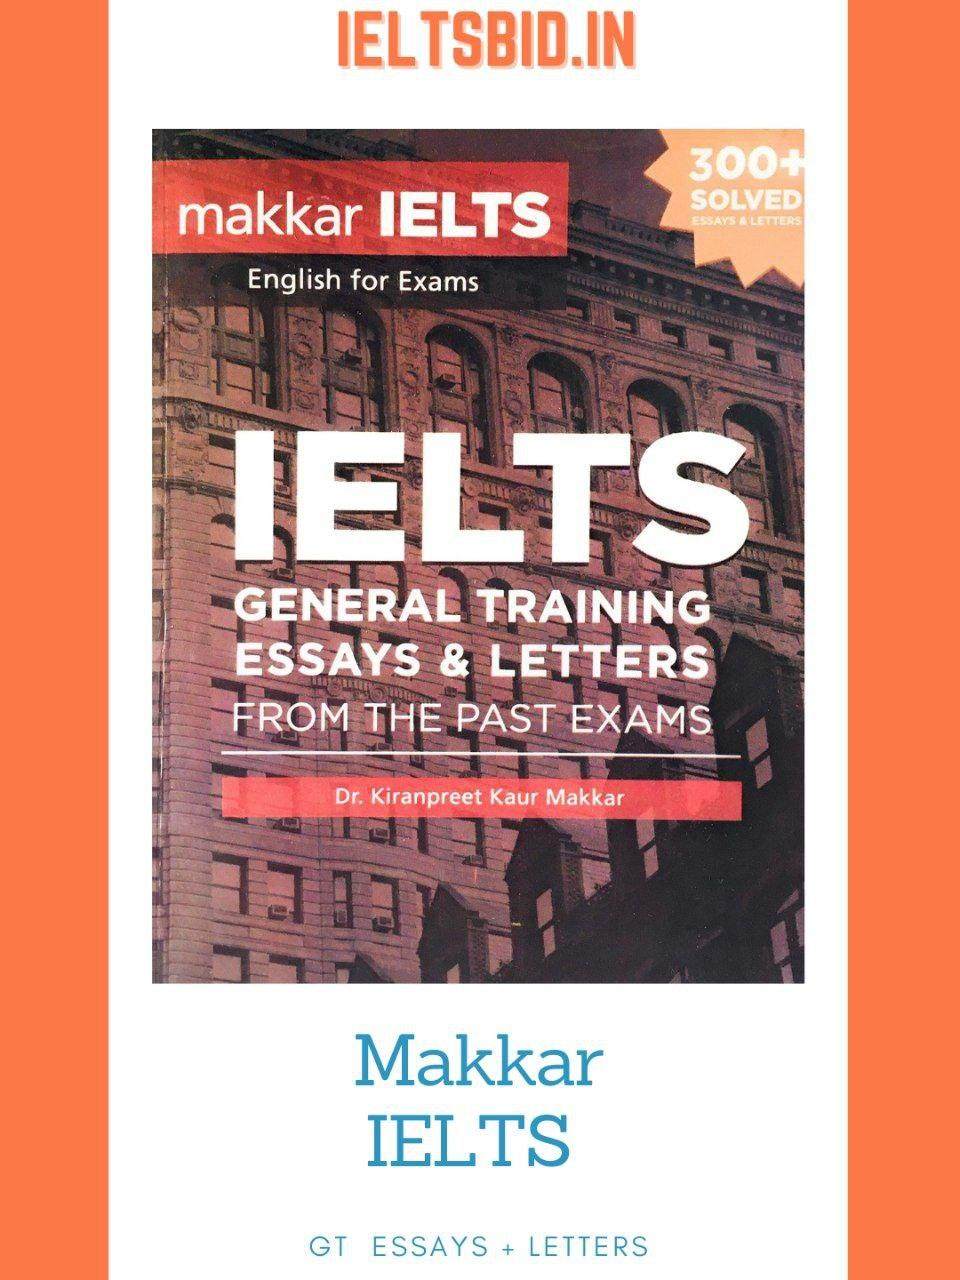 makkar ielts general training essays and letters